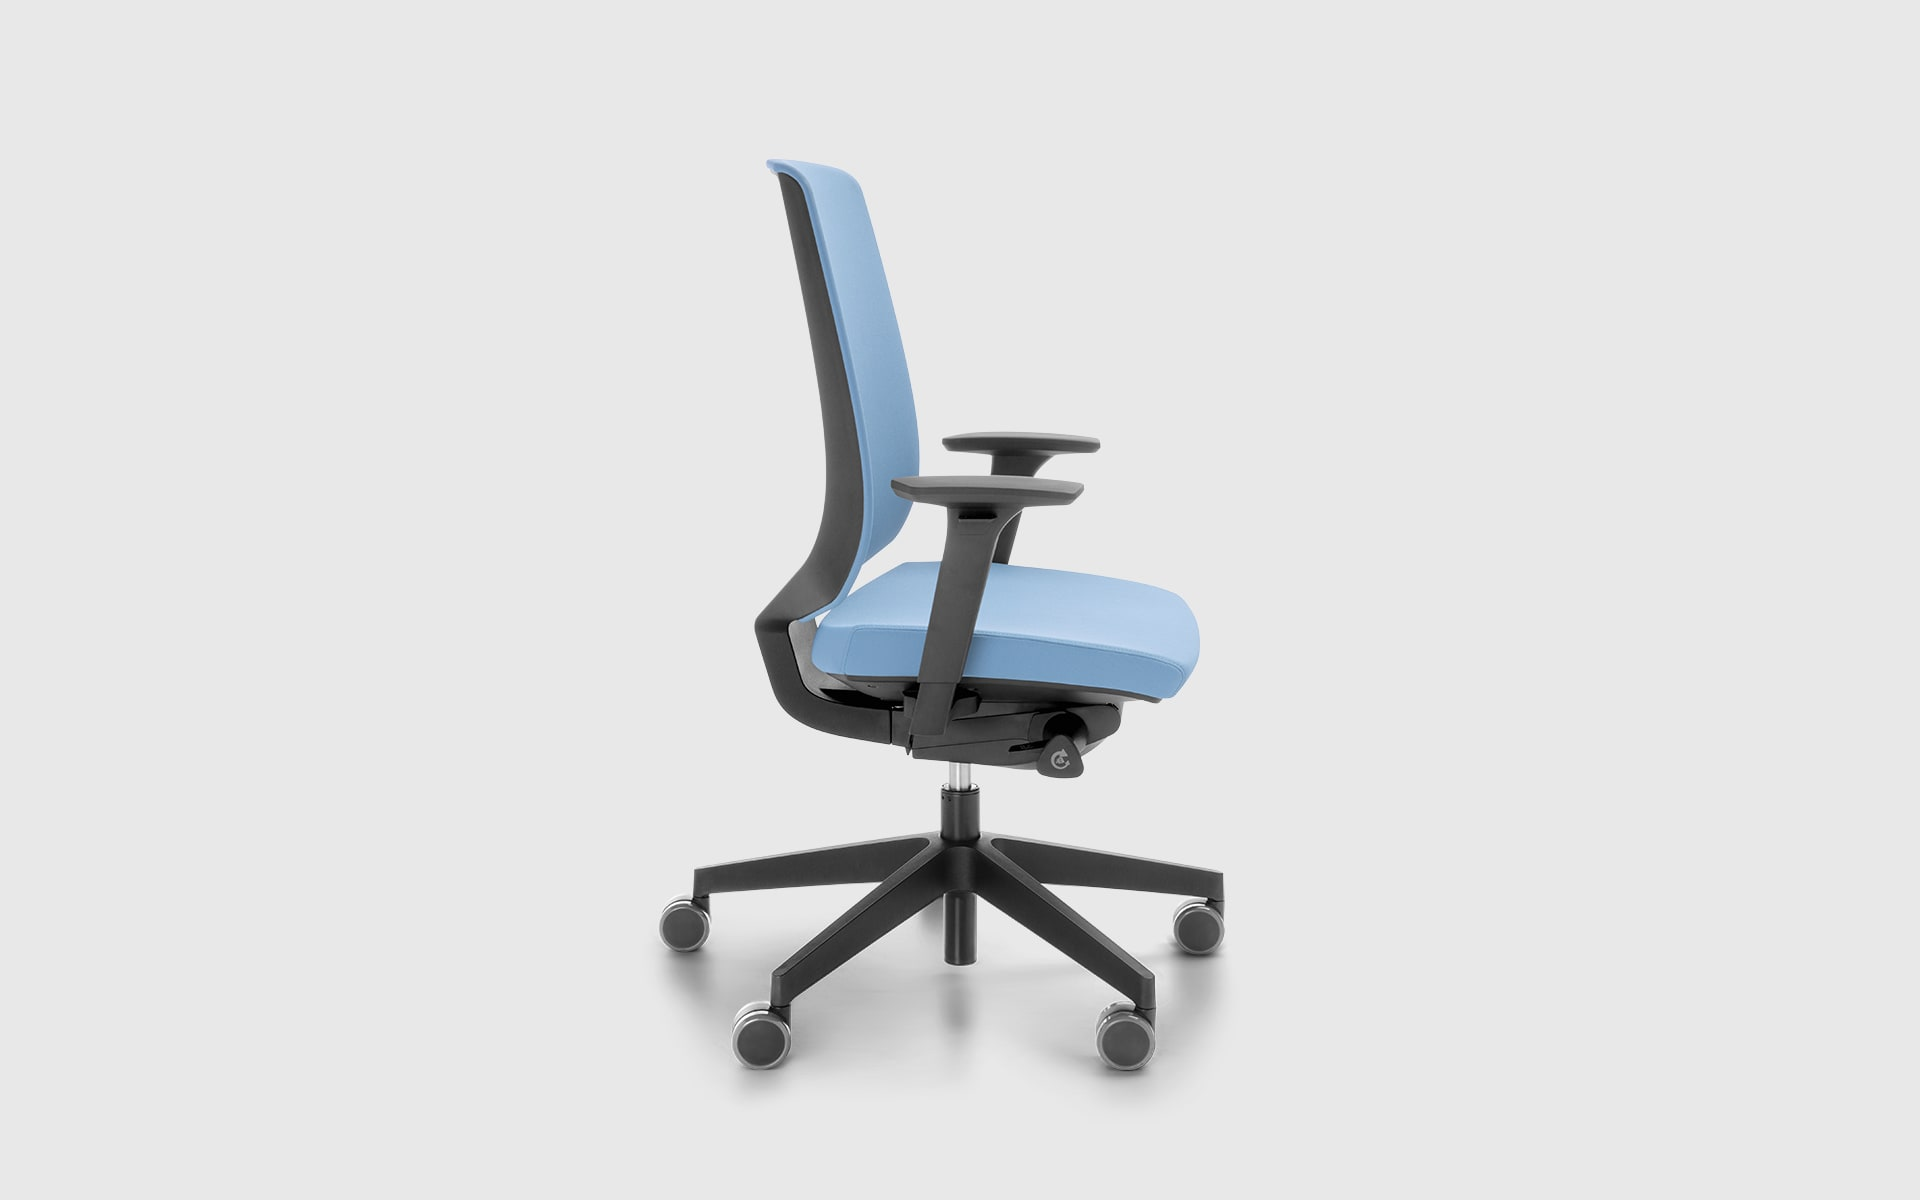 Profim LightUp office chair by ITO Design with blue upholstery